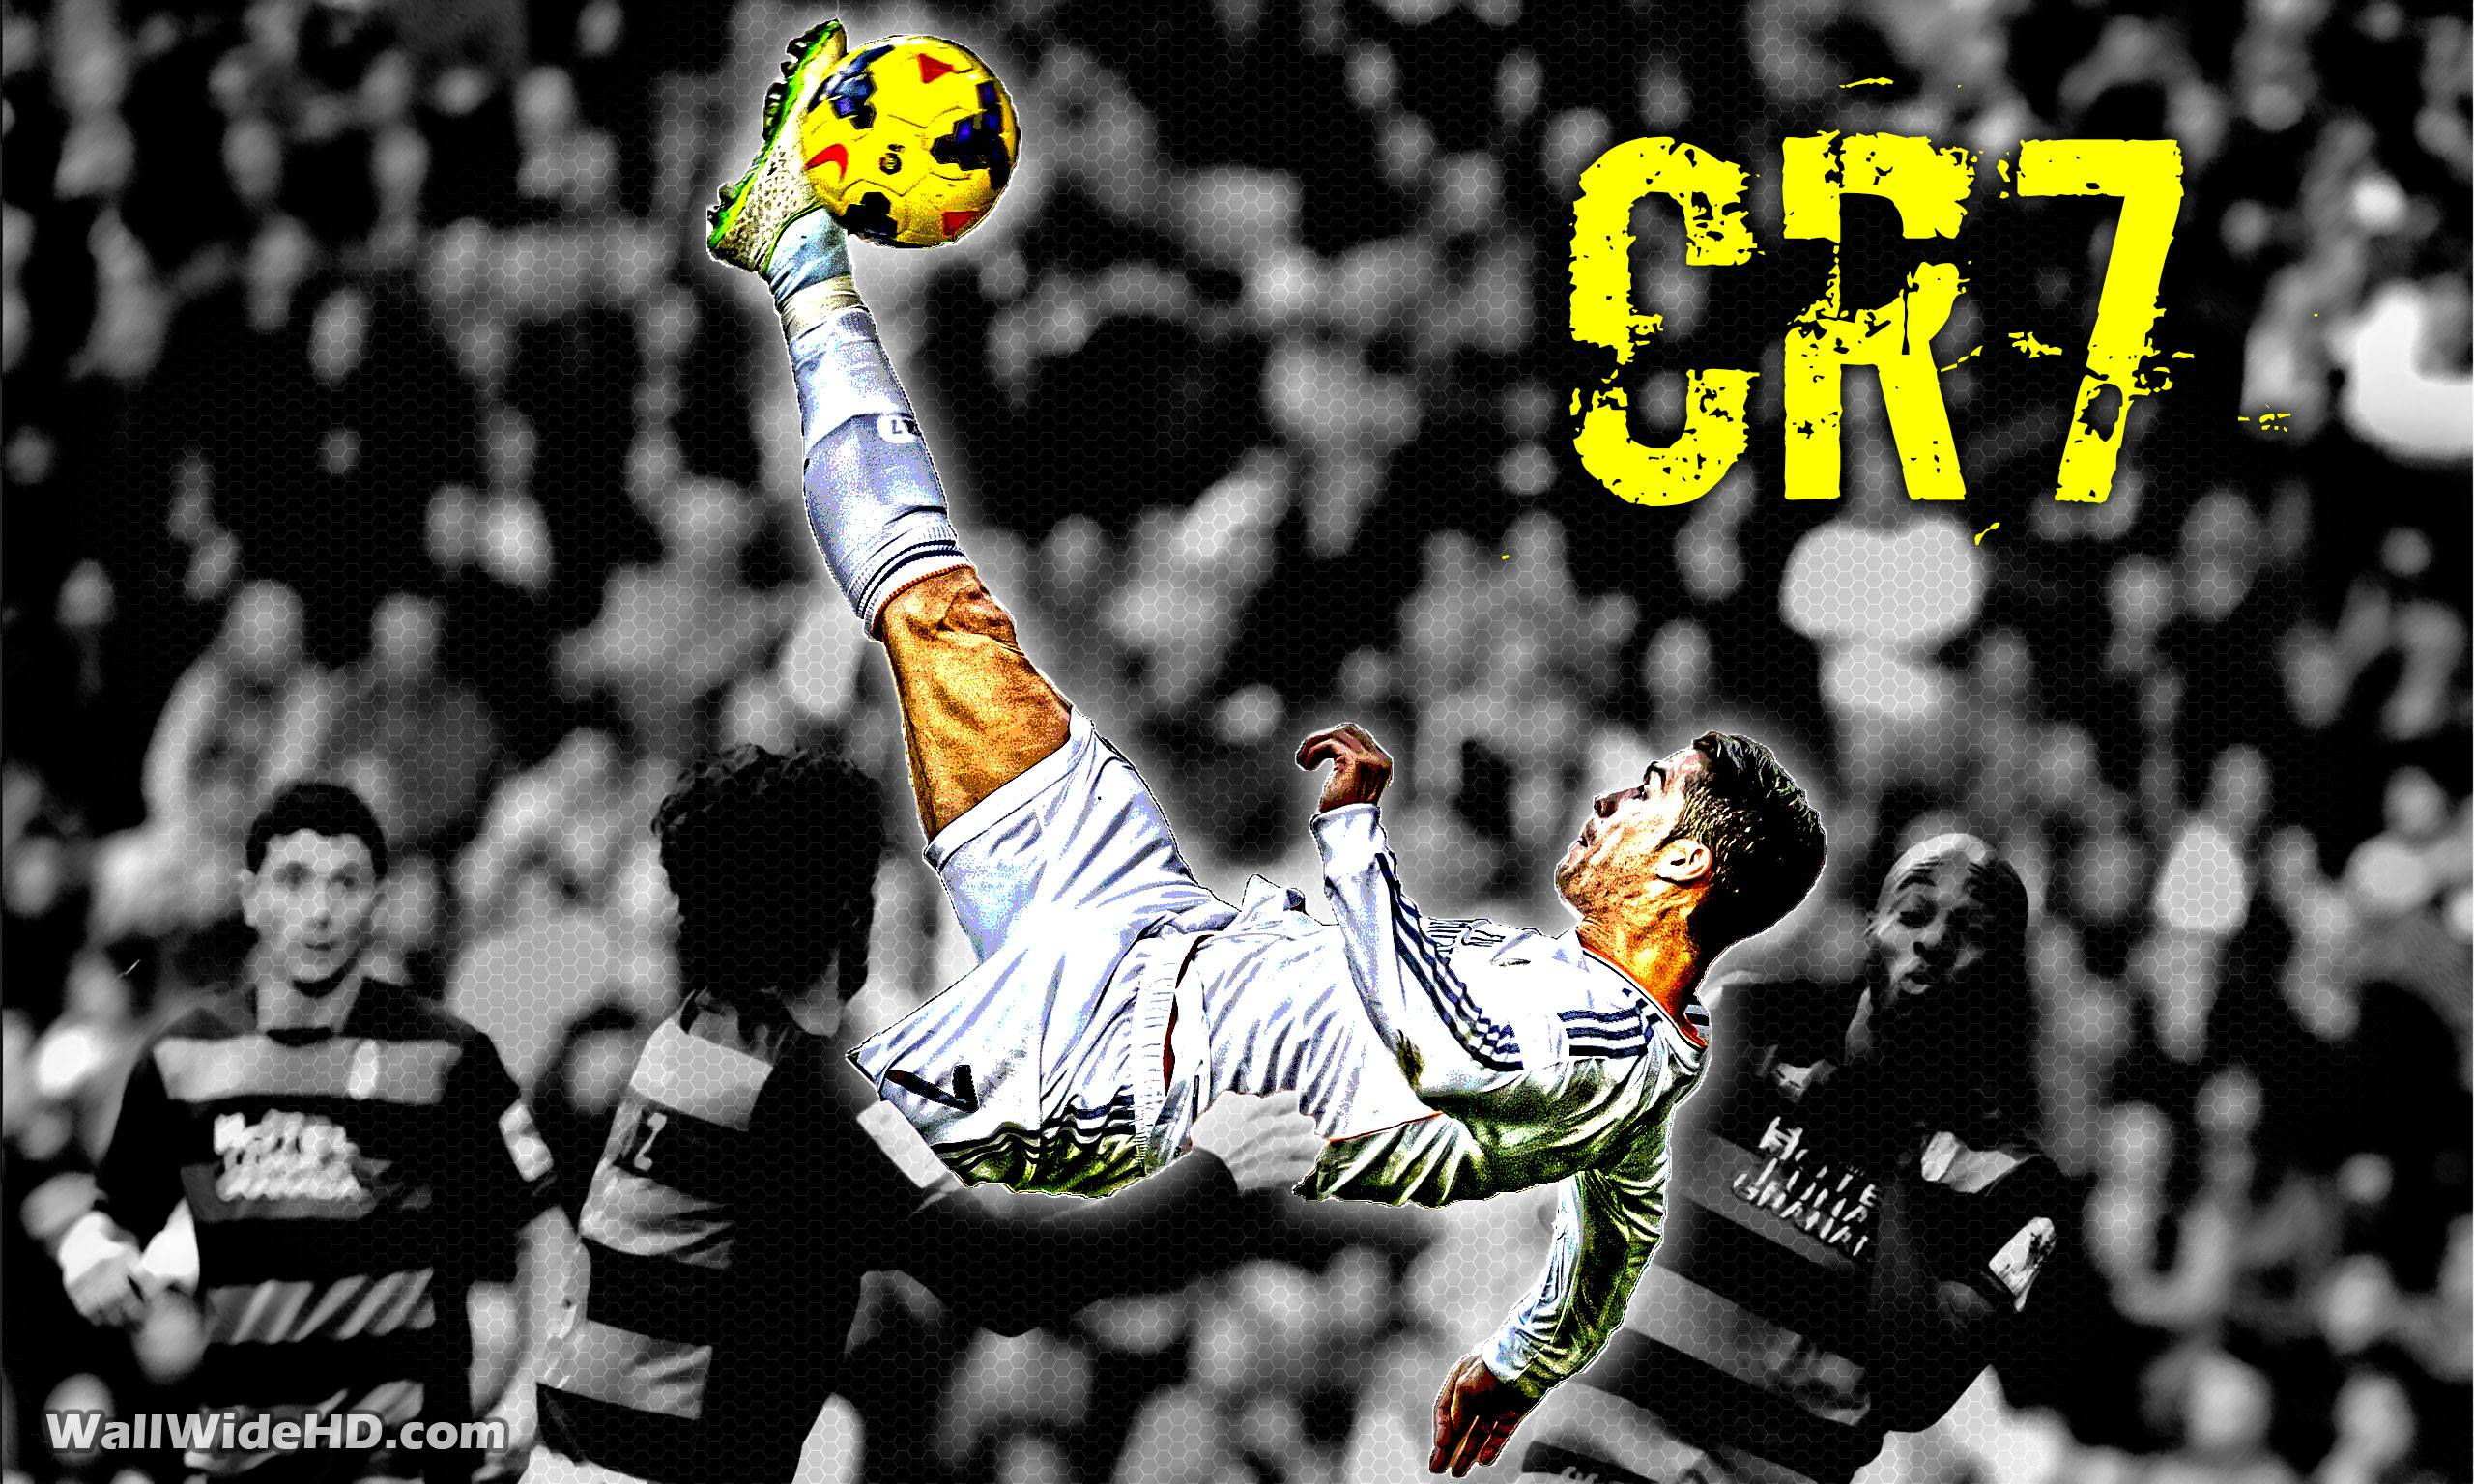 Ronaldo 7 wallpapers 2015 wallpaper cave cristiano ronaldo 7 wallpapers 2015 wallpaper cave voltagebd Images